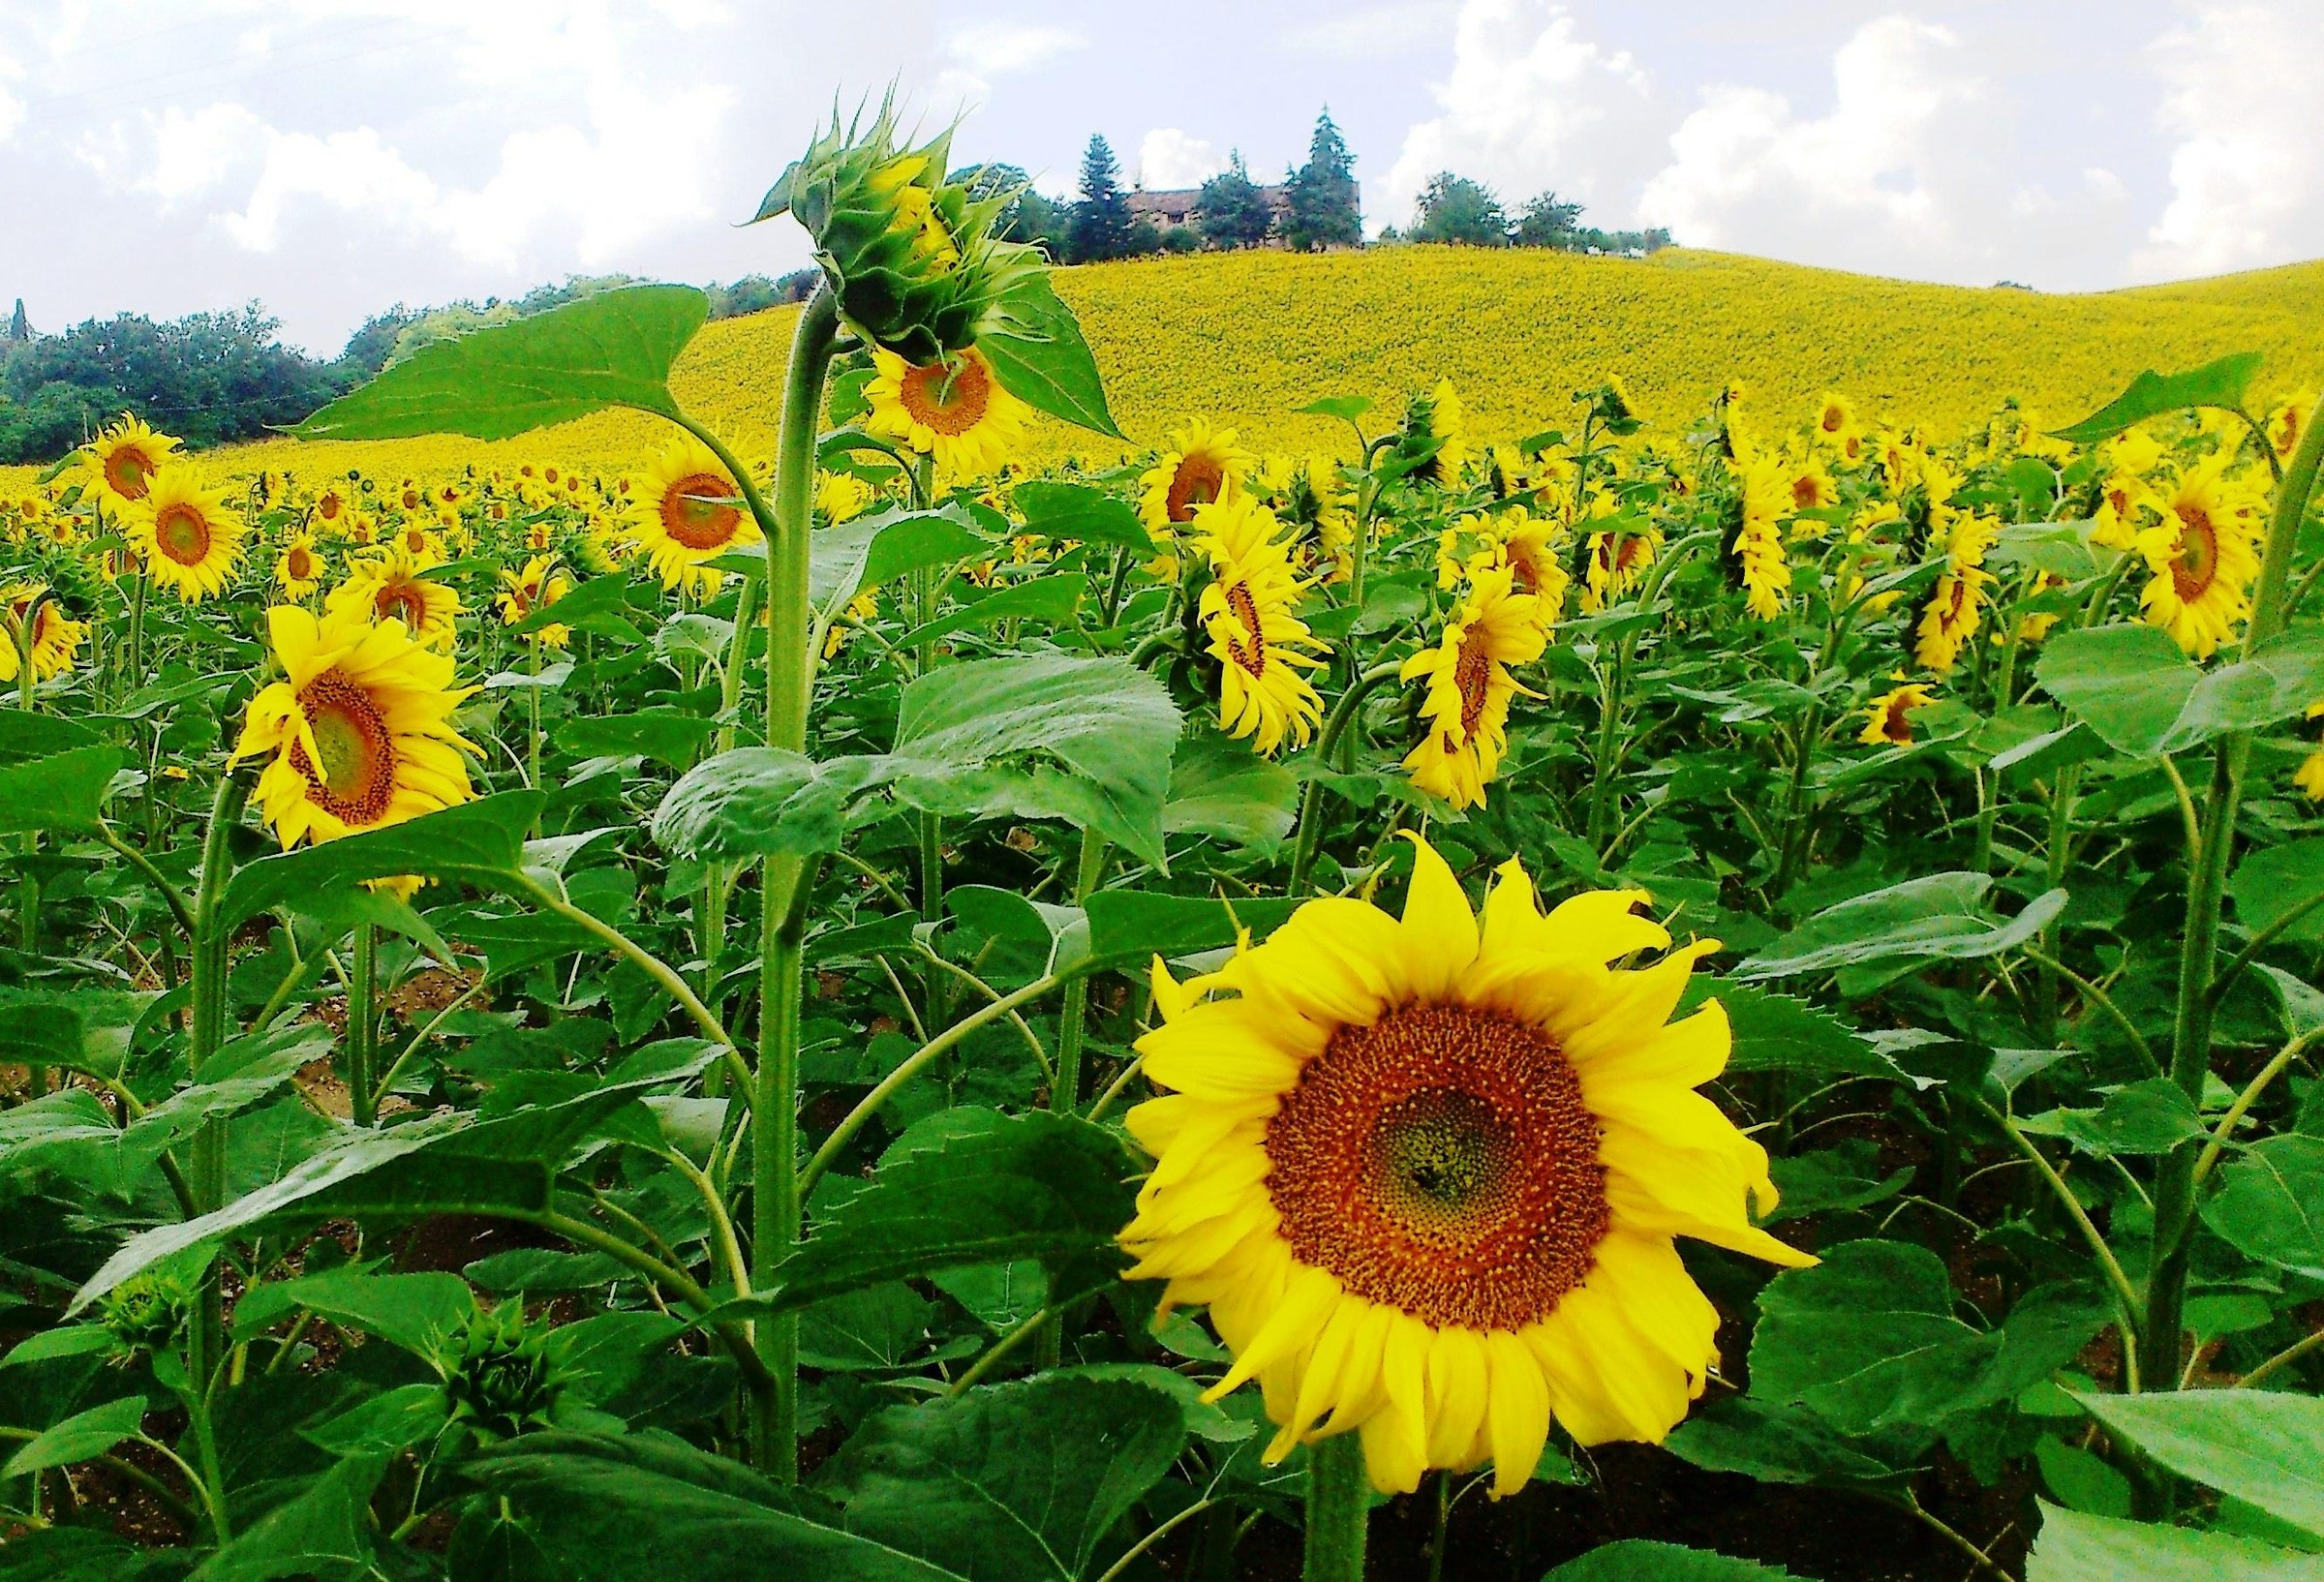 The charm of sunflowers ......